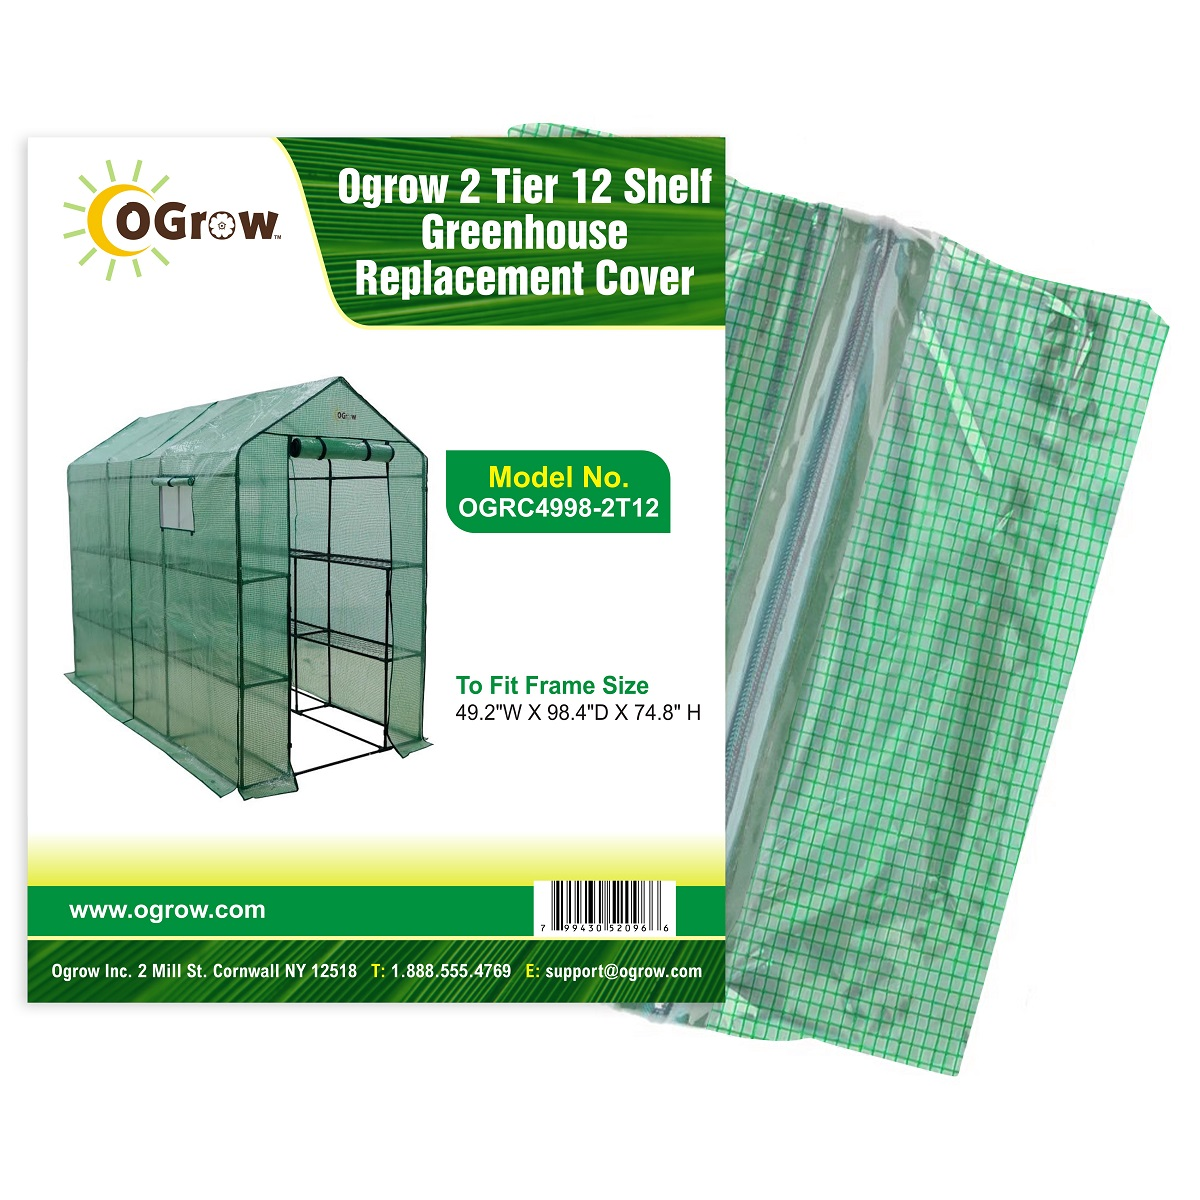 "2 Tier 12 Shelf Greenhouse PE Replacement Cover To Fit Frame Size 49.2""W X 98.4""D X 74.8""H by KSH Brands"